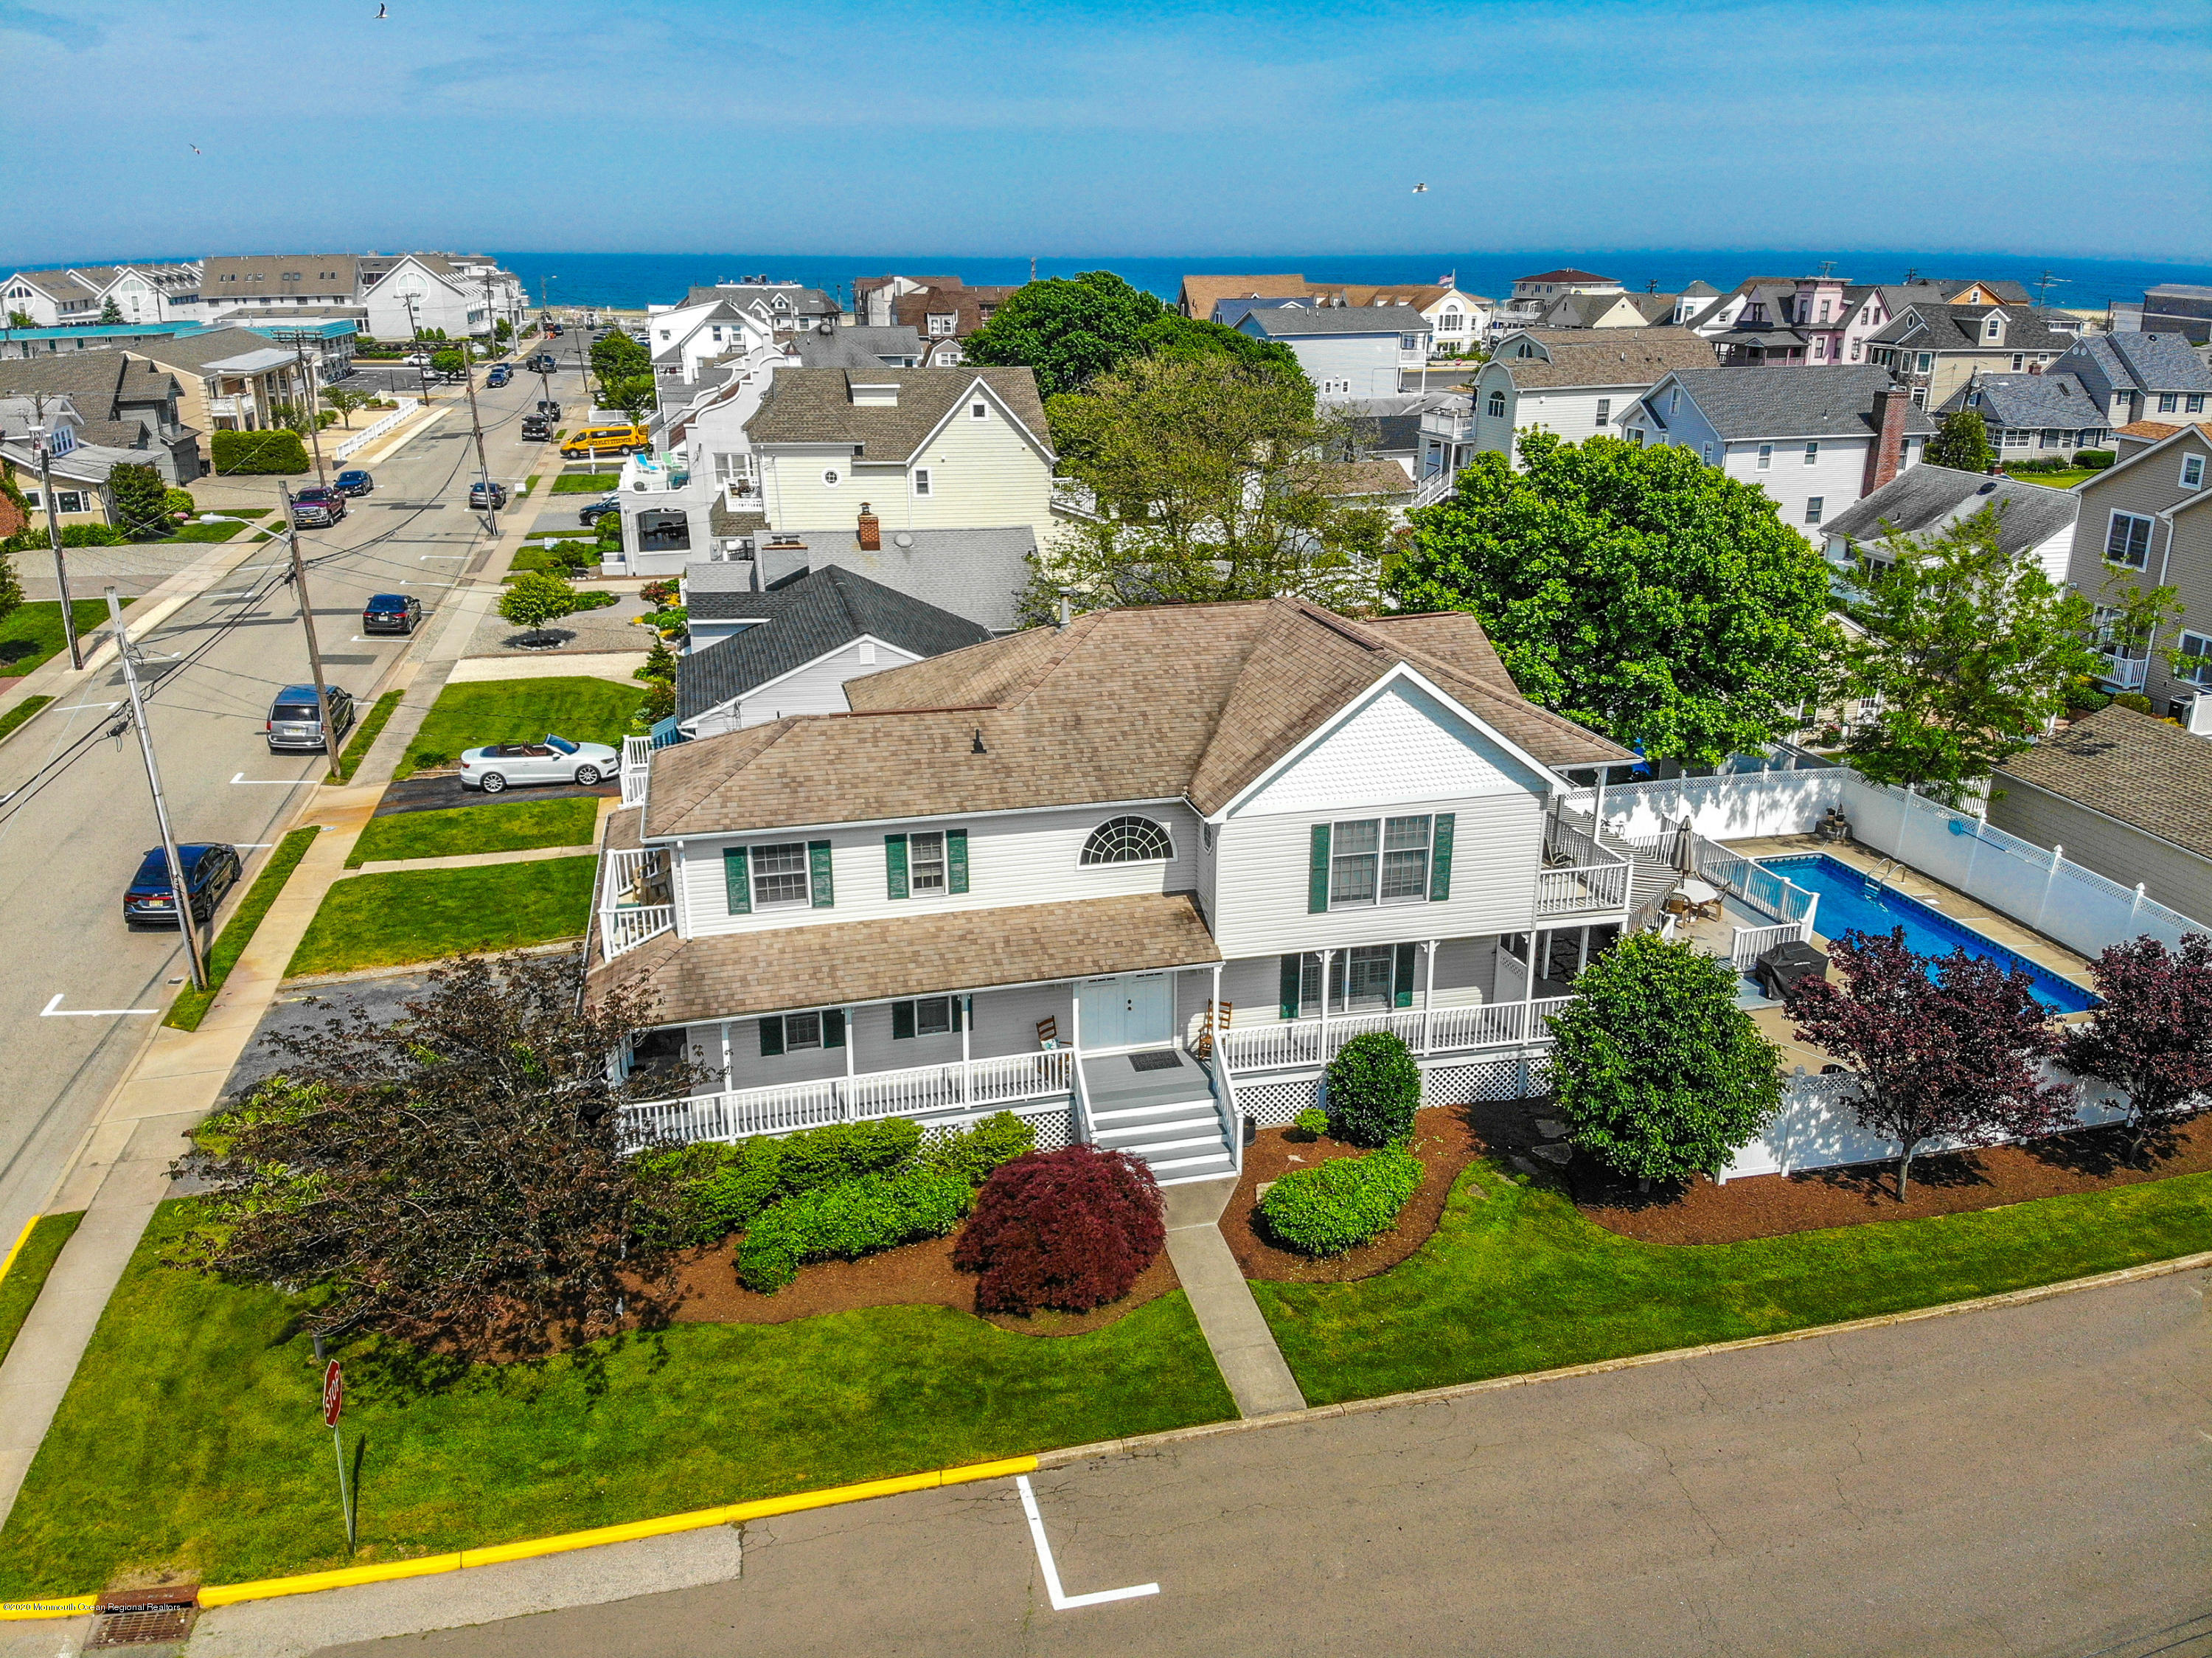 Photo of 118 New Jersey Avenue, Point Pleasant Beach, NJ 08742